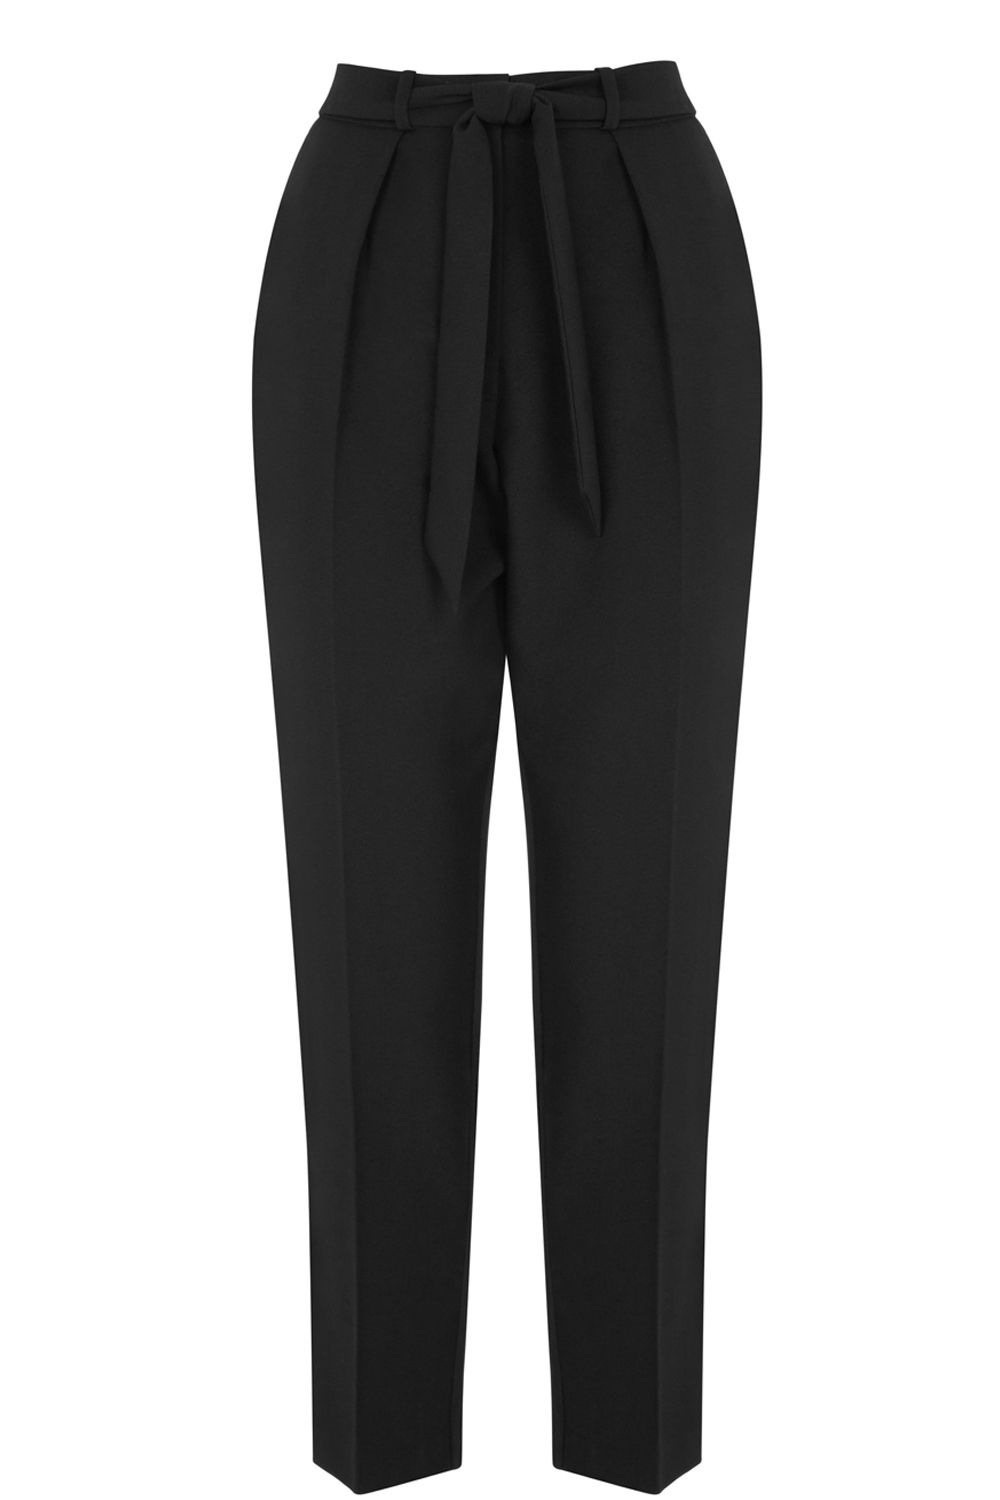 Oasis Tapered Leg Trouser, Black